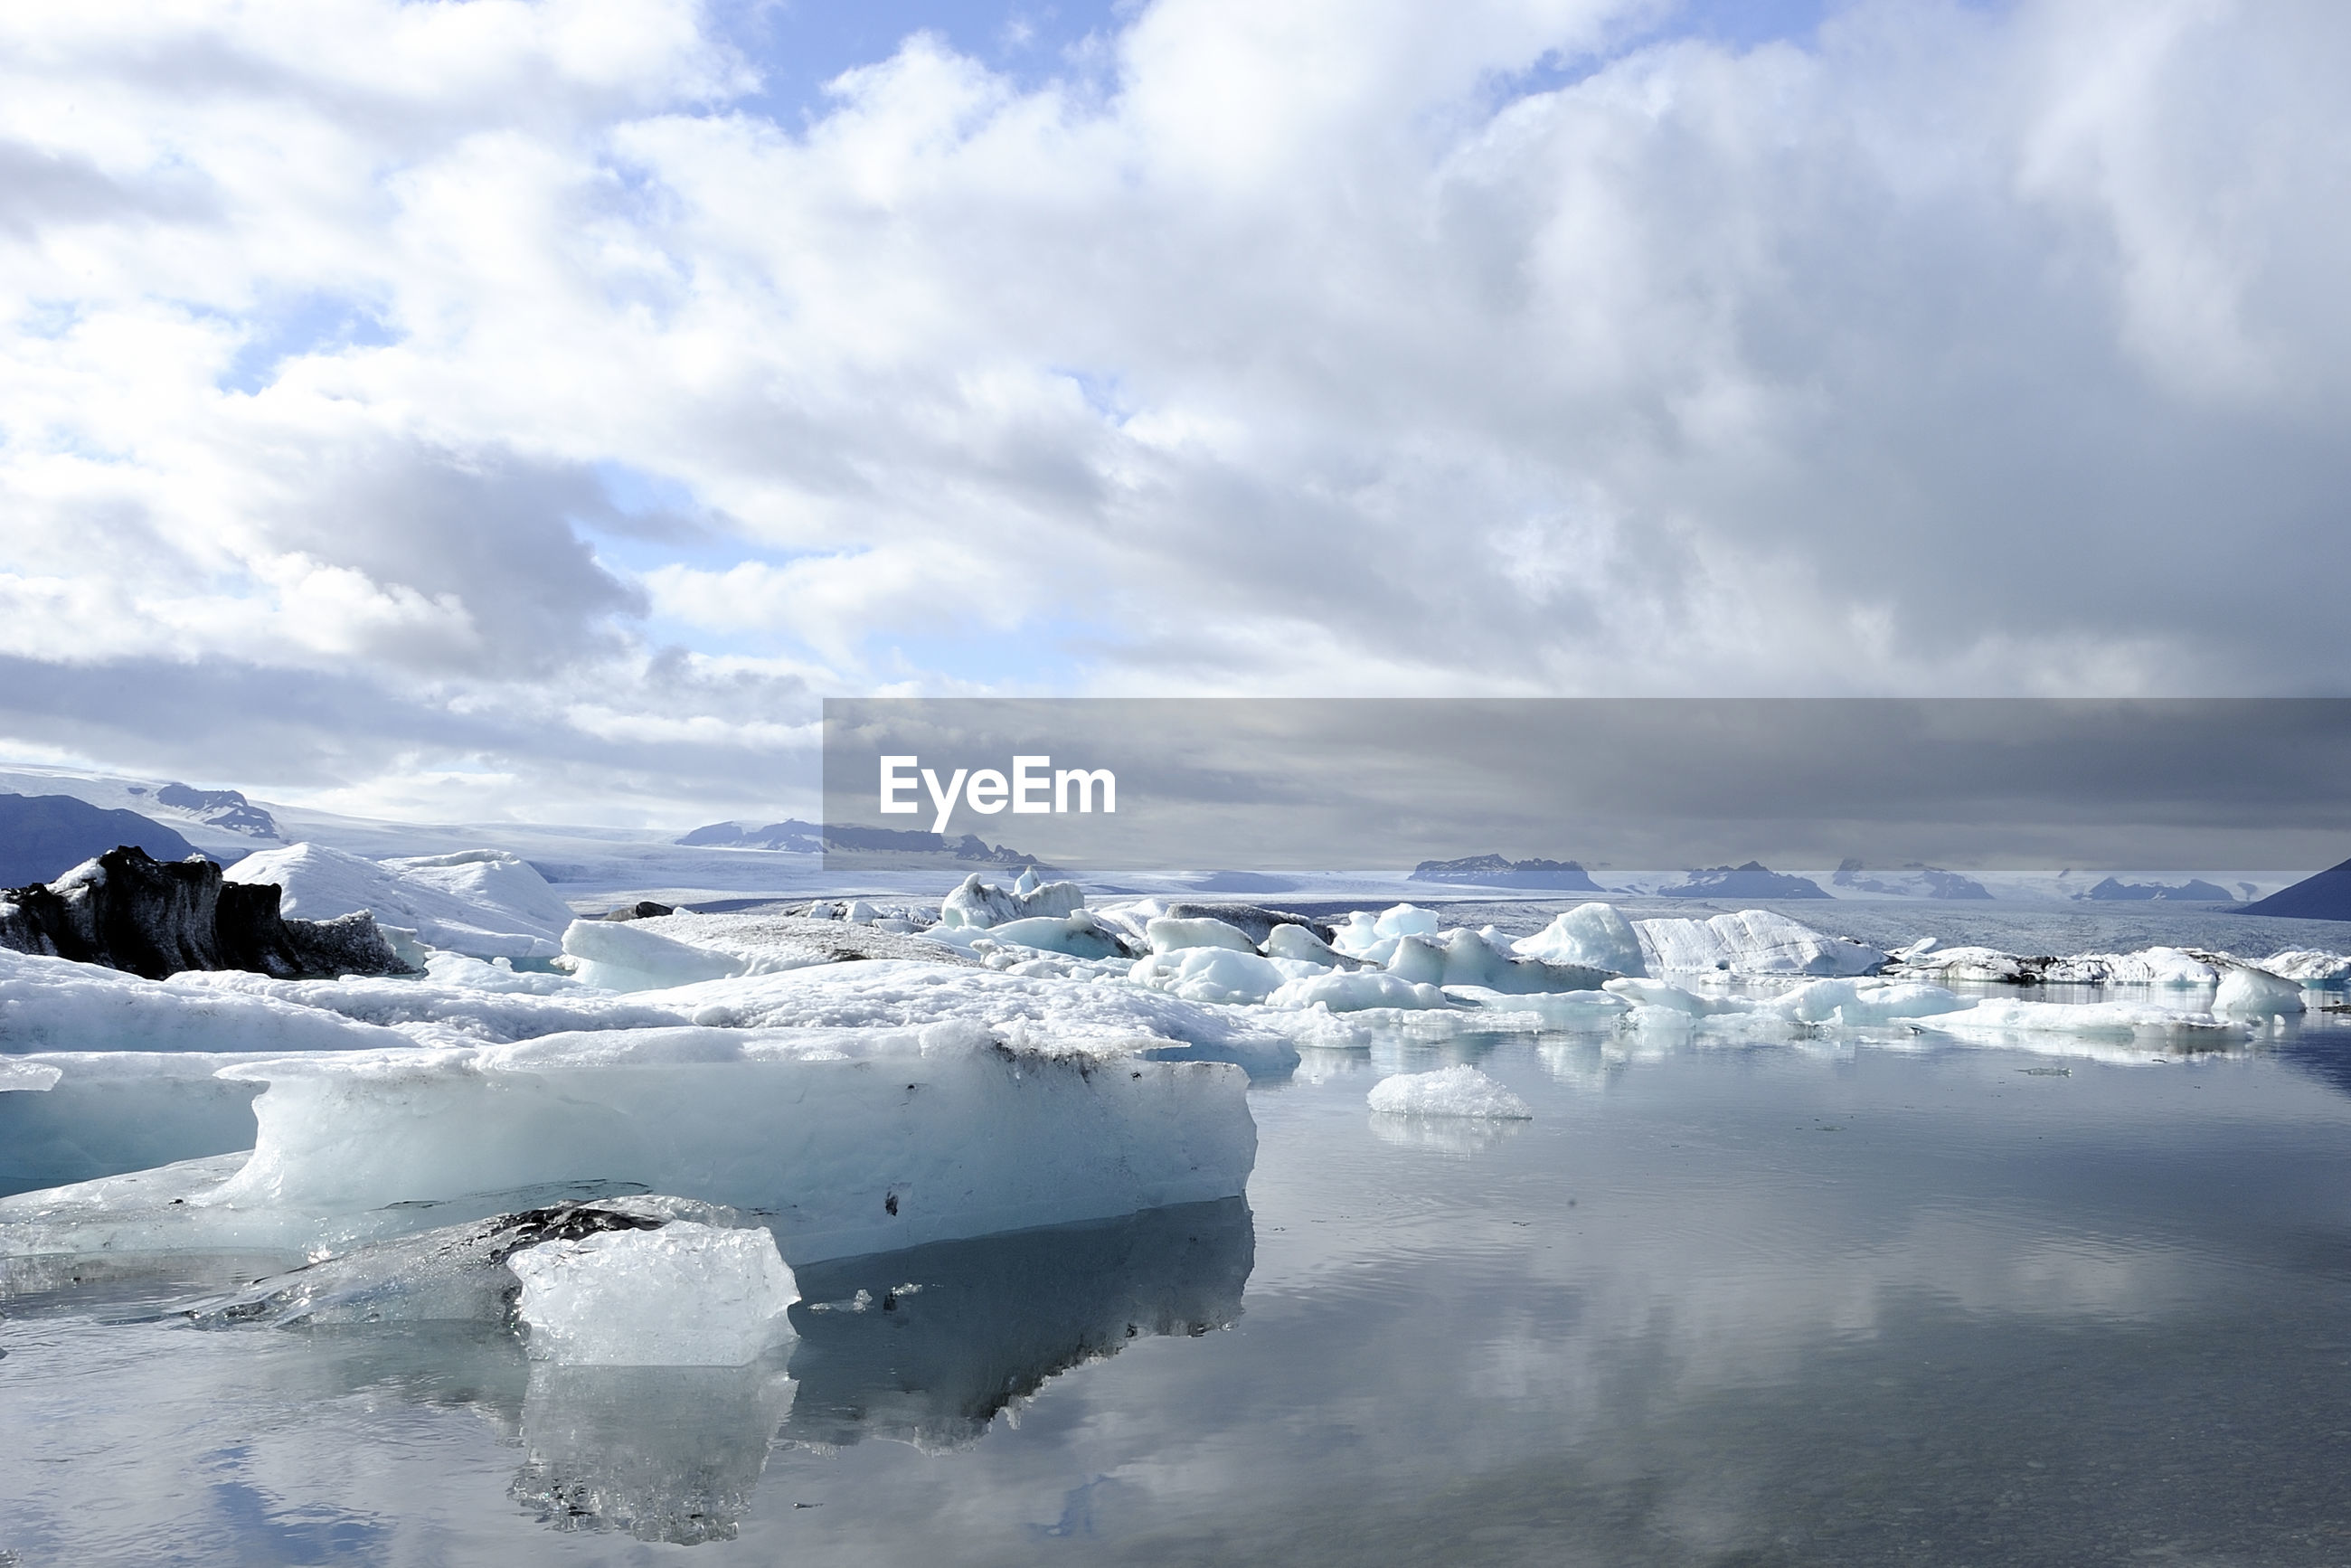 SCENIC VIEW OF ICEBERGS AGAINST SKY